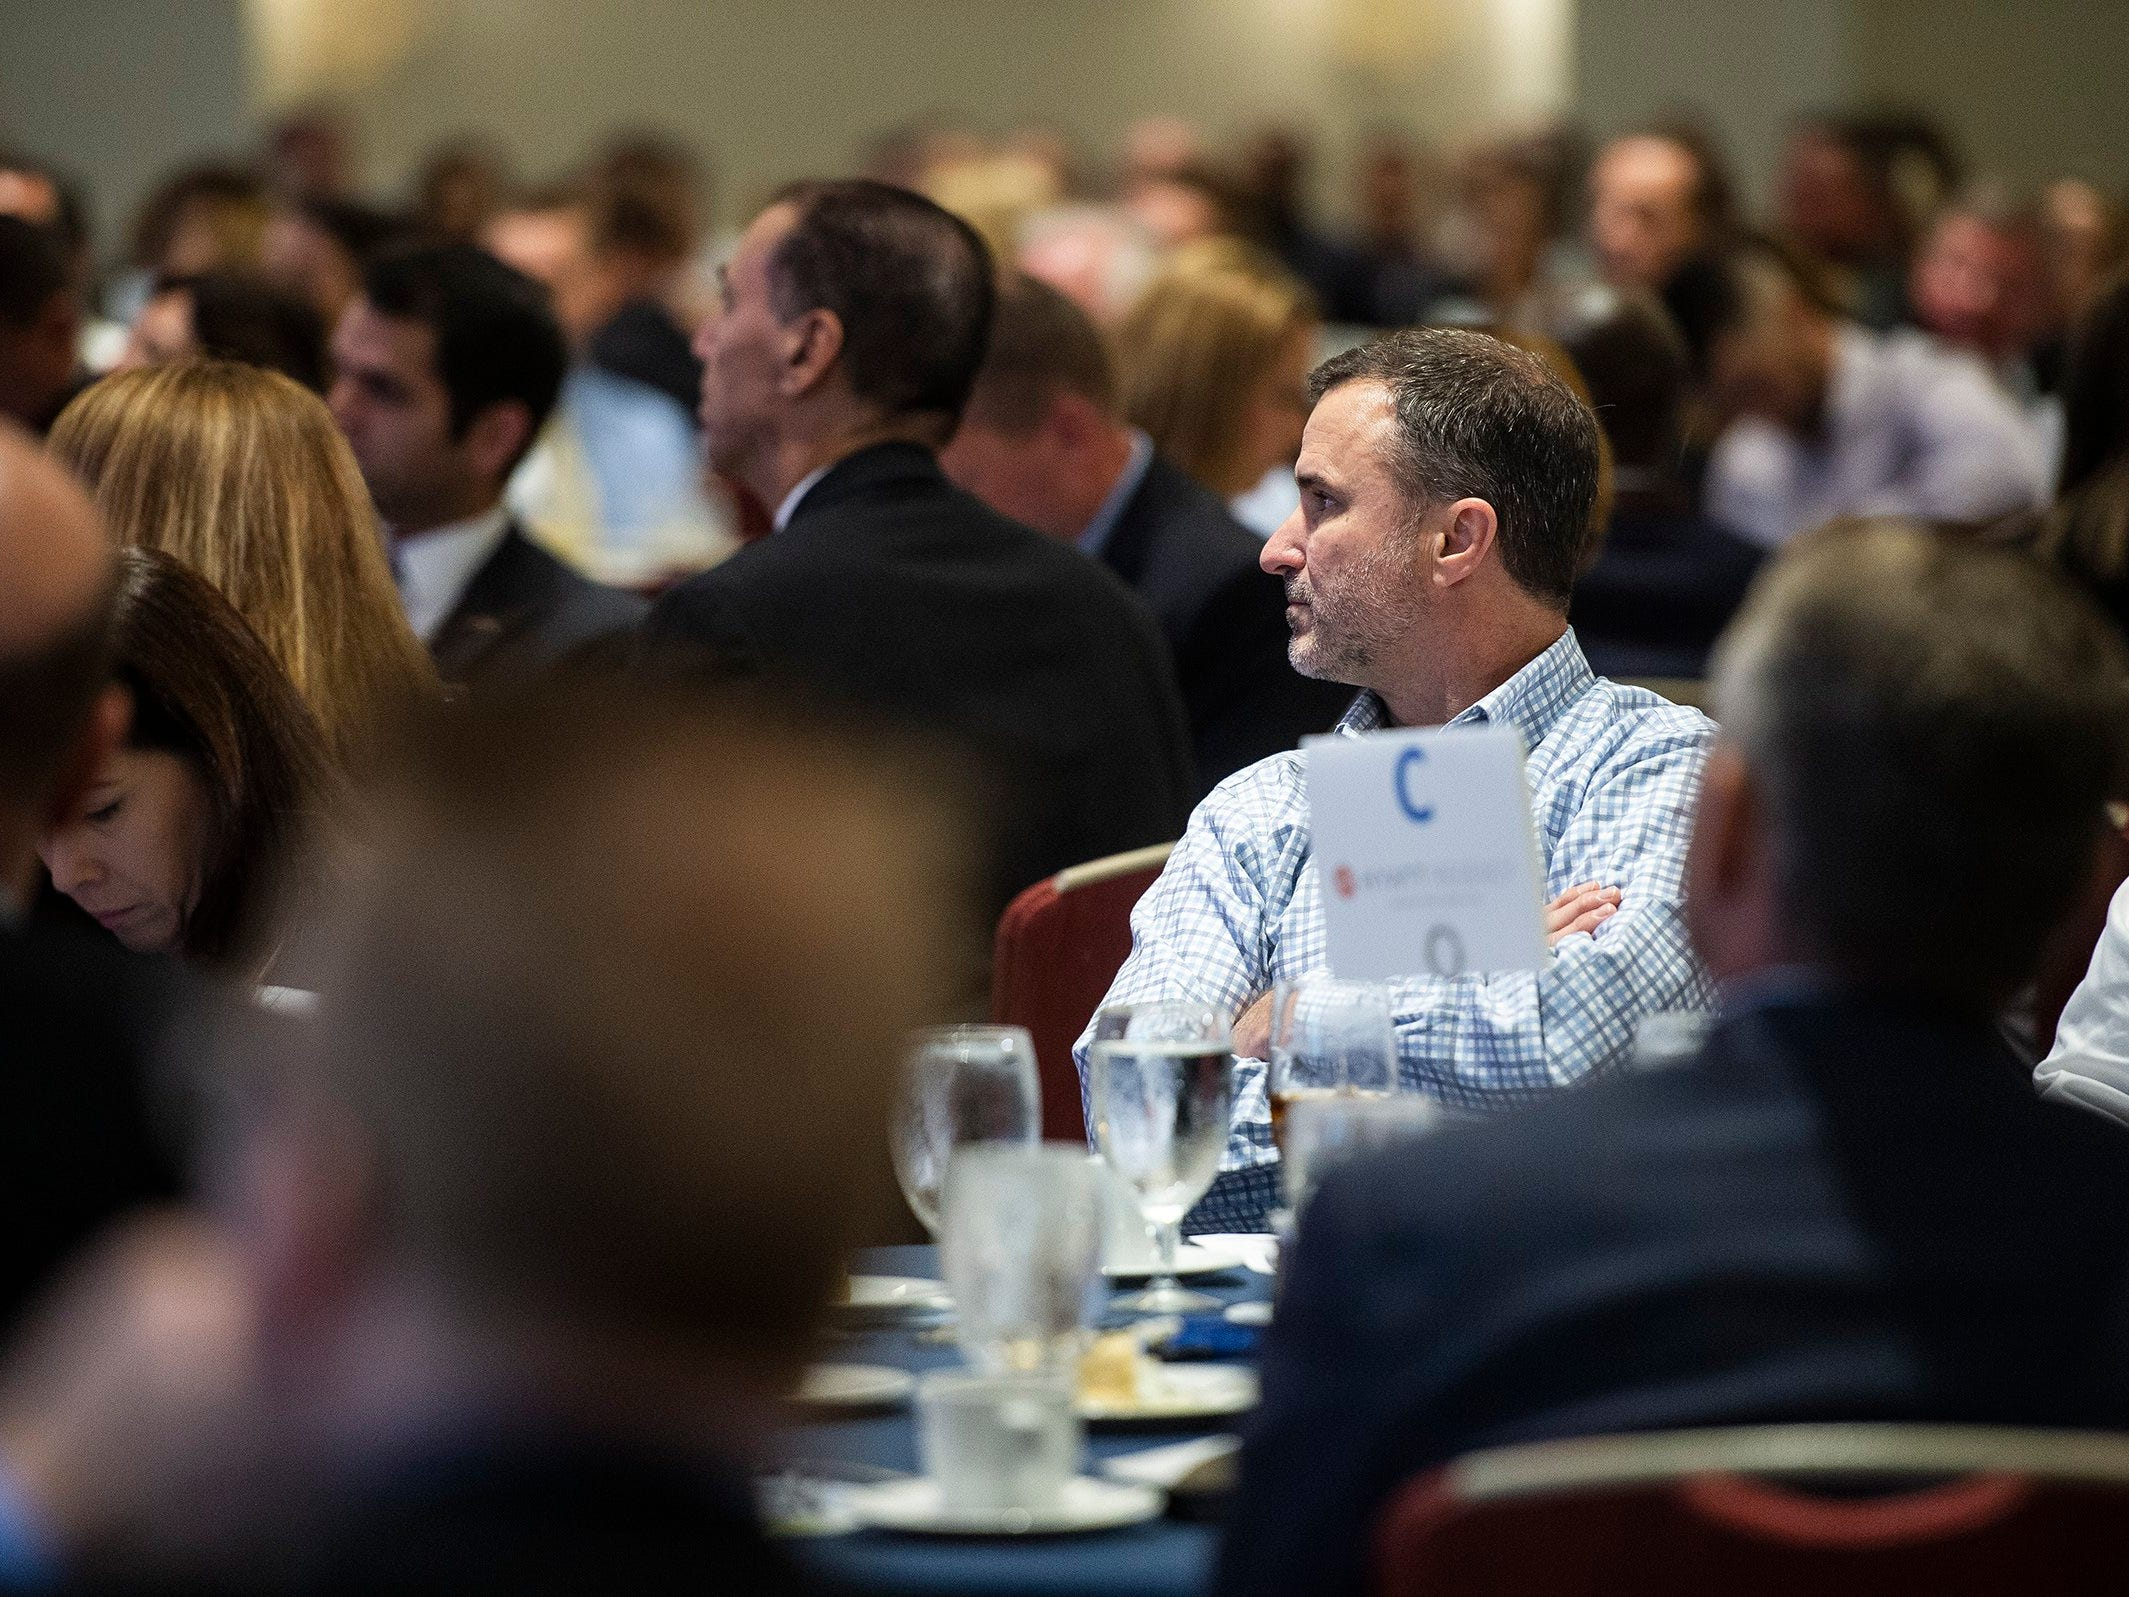 Members look on during the Bonita Springs Area Chamber of Commerce Awards Luncheon at the Hyatt Regency Coconut Point in Estero on Thursday, Aug. 30, 2018.